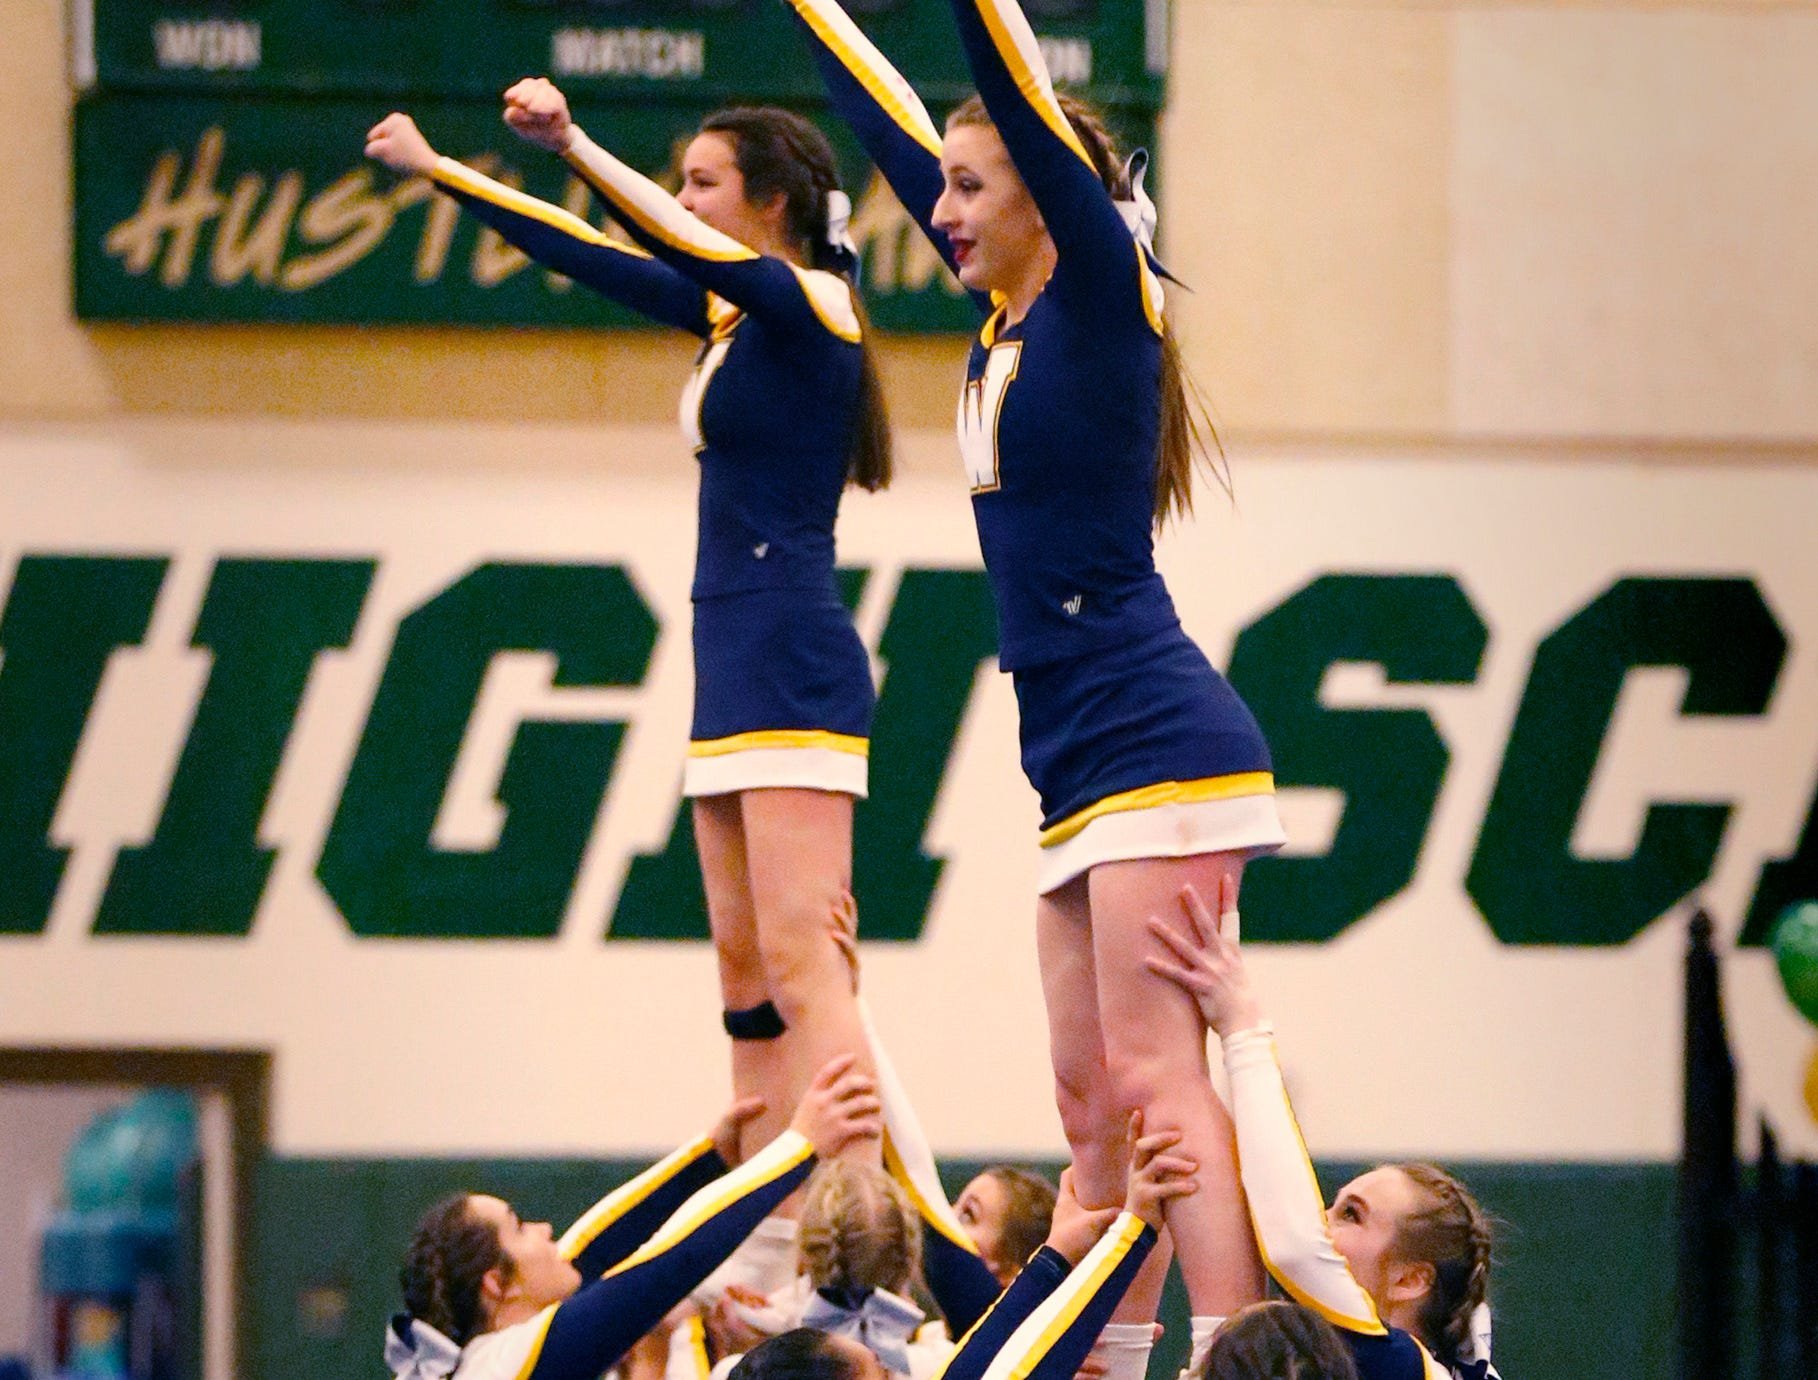 The Whitnall High School team finishes a stack in the varsity non-tumble division during the Greenfield Xtreme Cheer competition at Greenfield High School on Jan. 12 that drew 56 teams competing in 13 divisions.